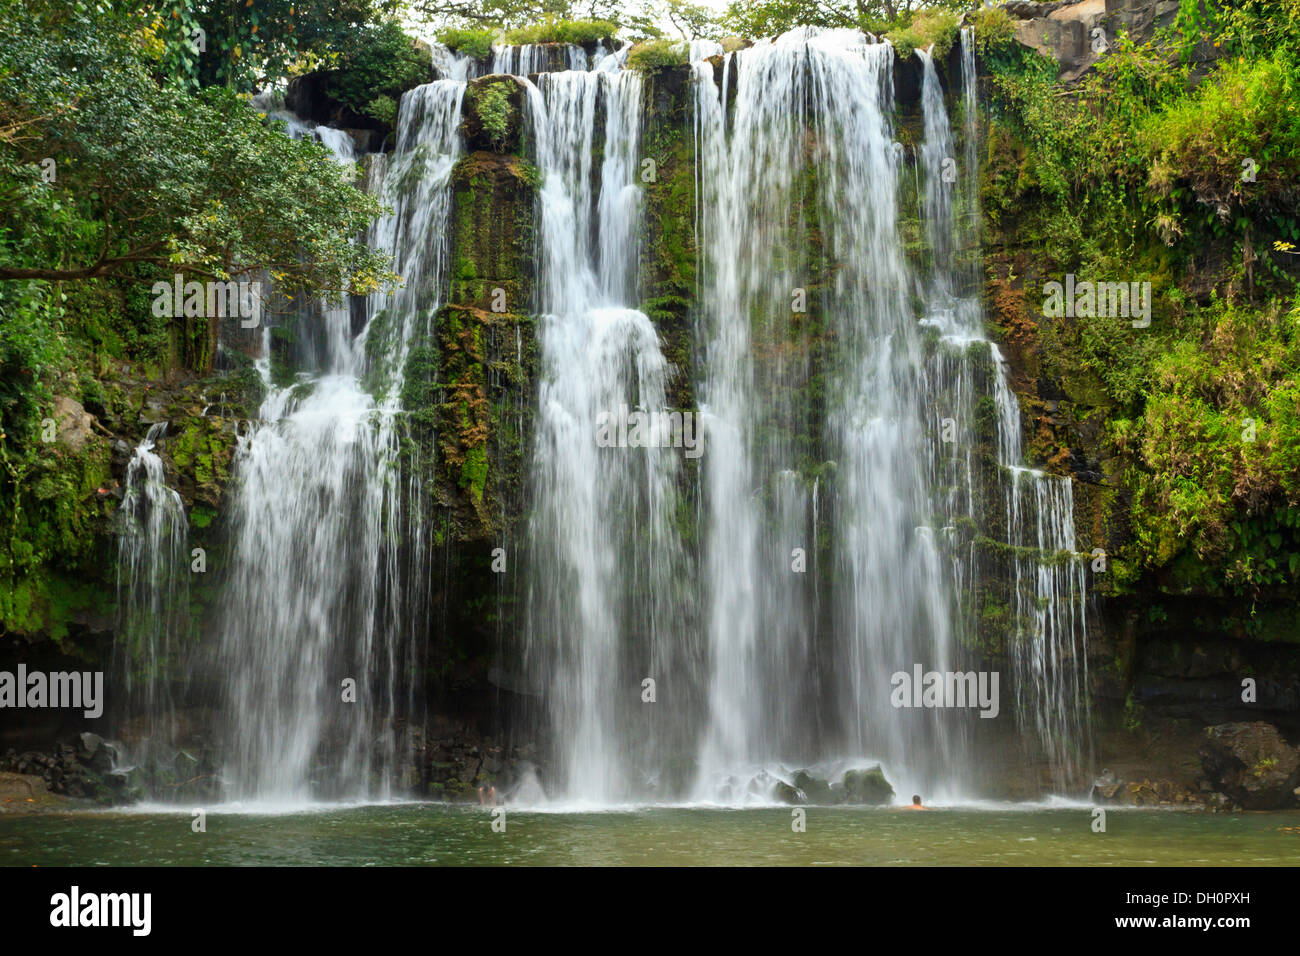 Idyllic Llano de Cortes waterfall in the jungle near Bagaces, Costa Rica - Stock Image